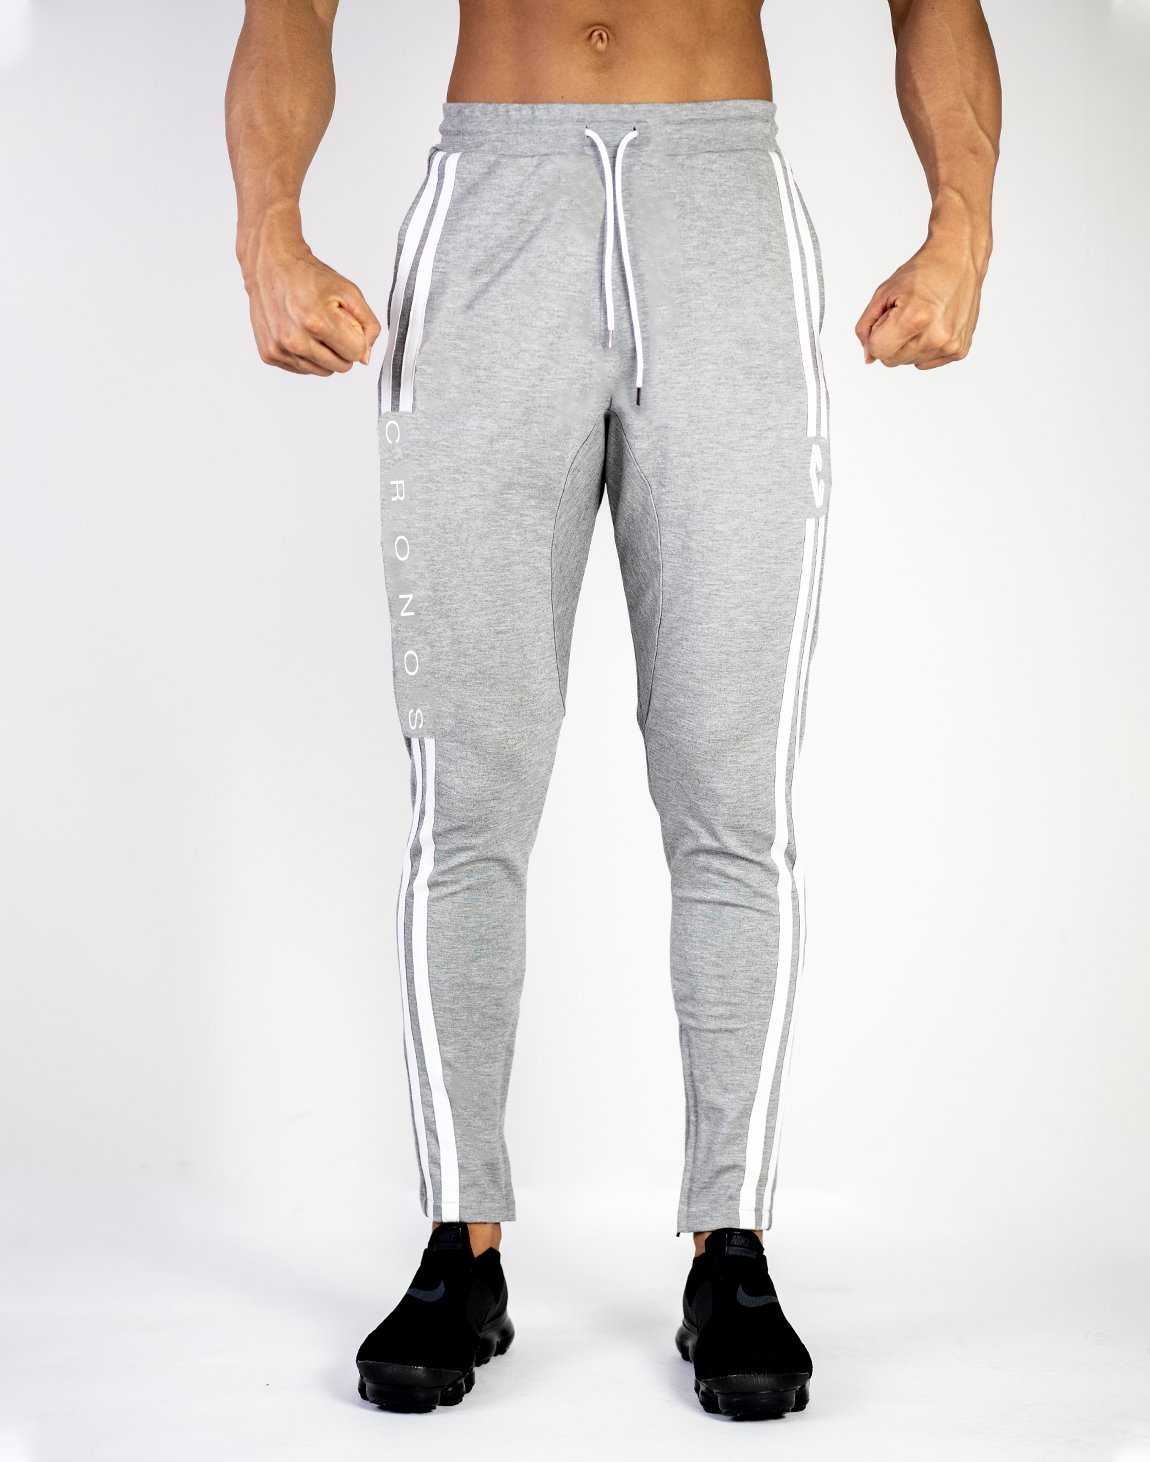 <img class='new_mark_img1' src='https://img.shop-pro.jp/img/new/icons1.gif' style='border:none;display:inline;margin:0px;padding:0px;width:auto;' />CRONOS NEW MODE 2STRIPE PANTS GRAY